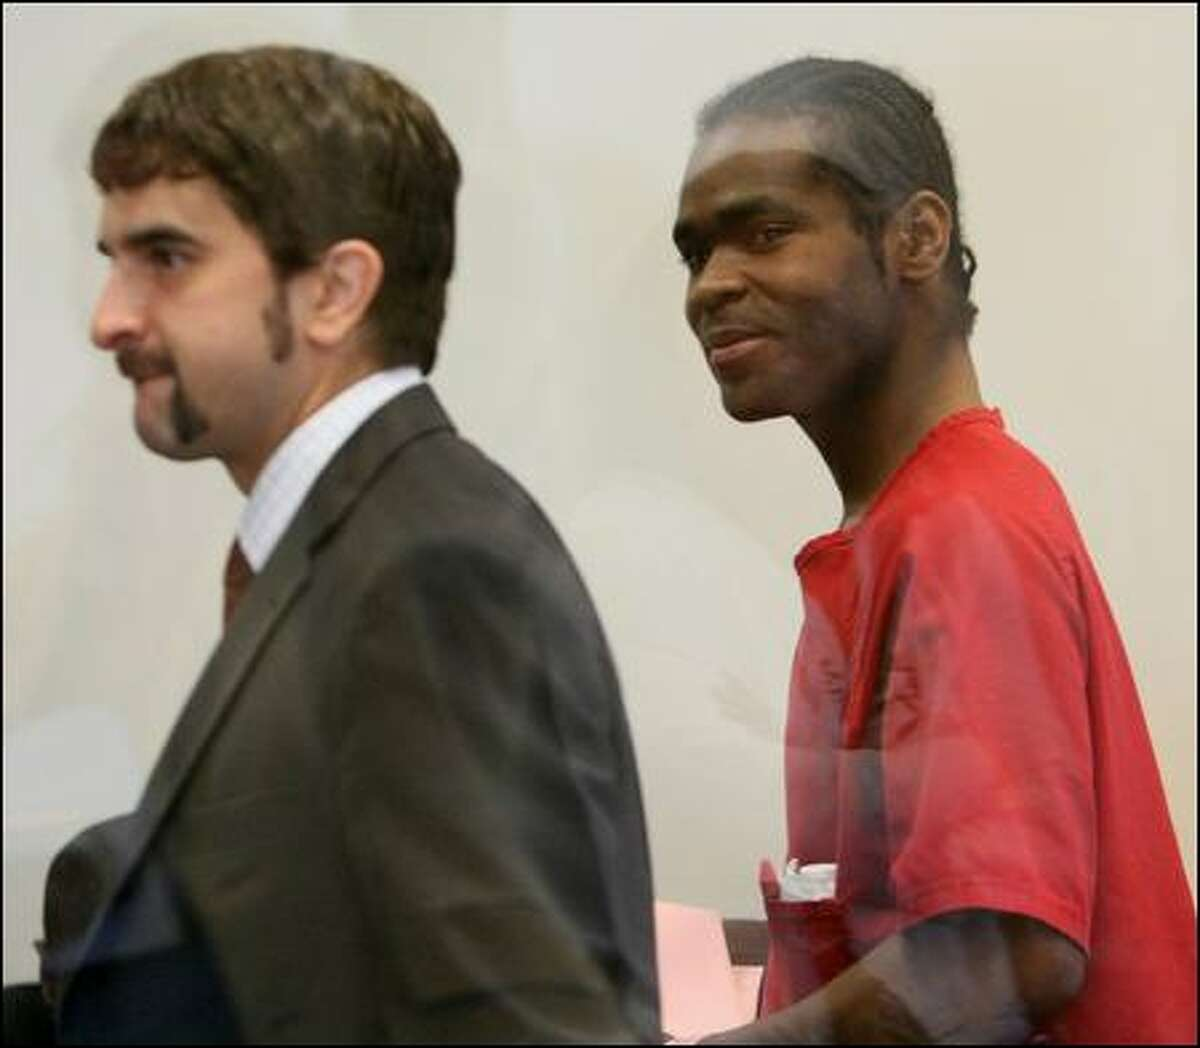 King County public defender Carlos Gonzales, pictured in 2008 with murder defendant Brian Keith Brown. Brown killed Seattle resident James Paroline with a single punch during an argument. The unintentional slaying prompted public outrage, but was ultimately resolved with Brown pleading guilty to second-degree murder in an agreement meant to align his prison sentence with the punishment for manslaughter.